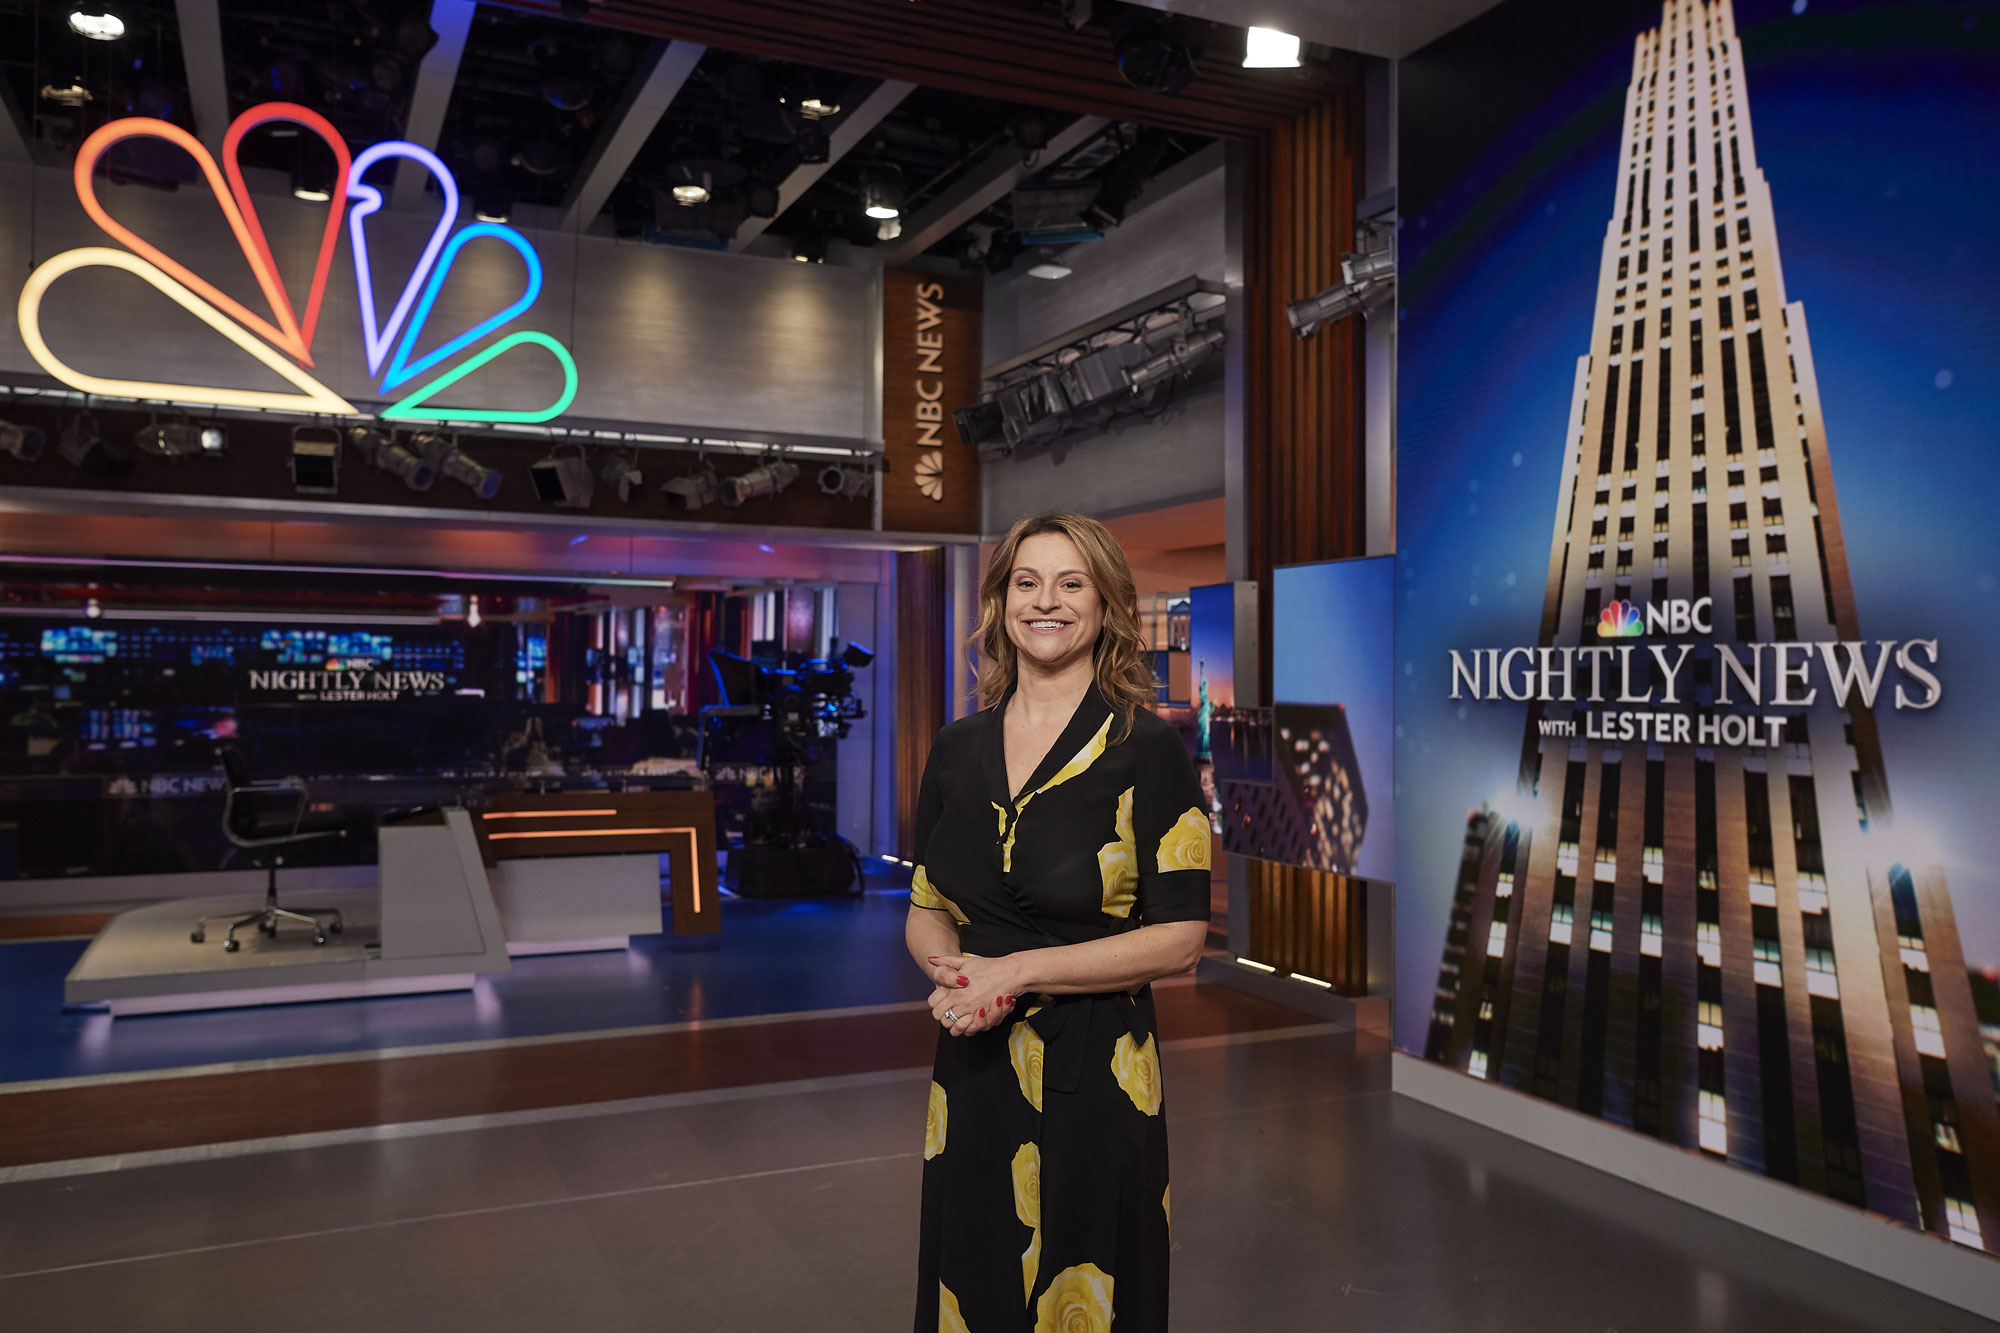 Jenn Suozzo '99 (CLAS) on the set of the NBC Nightly News at Rockefeller Center in Manhattan